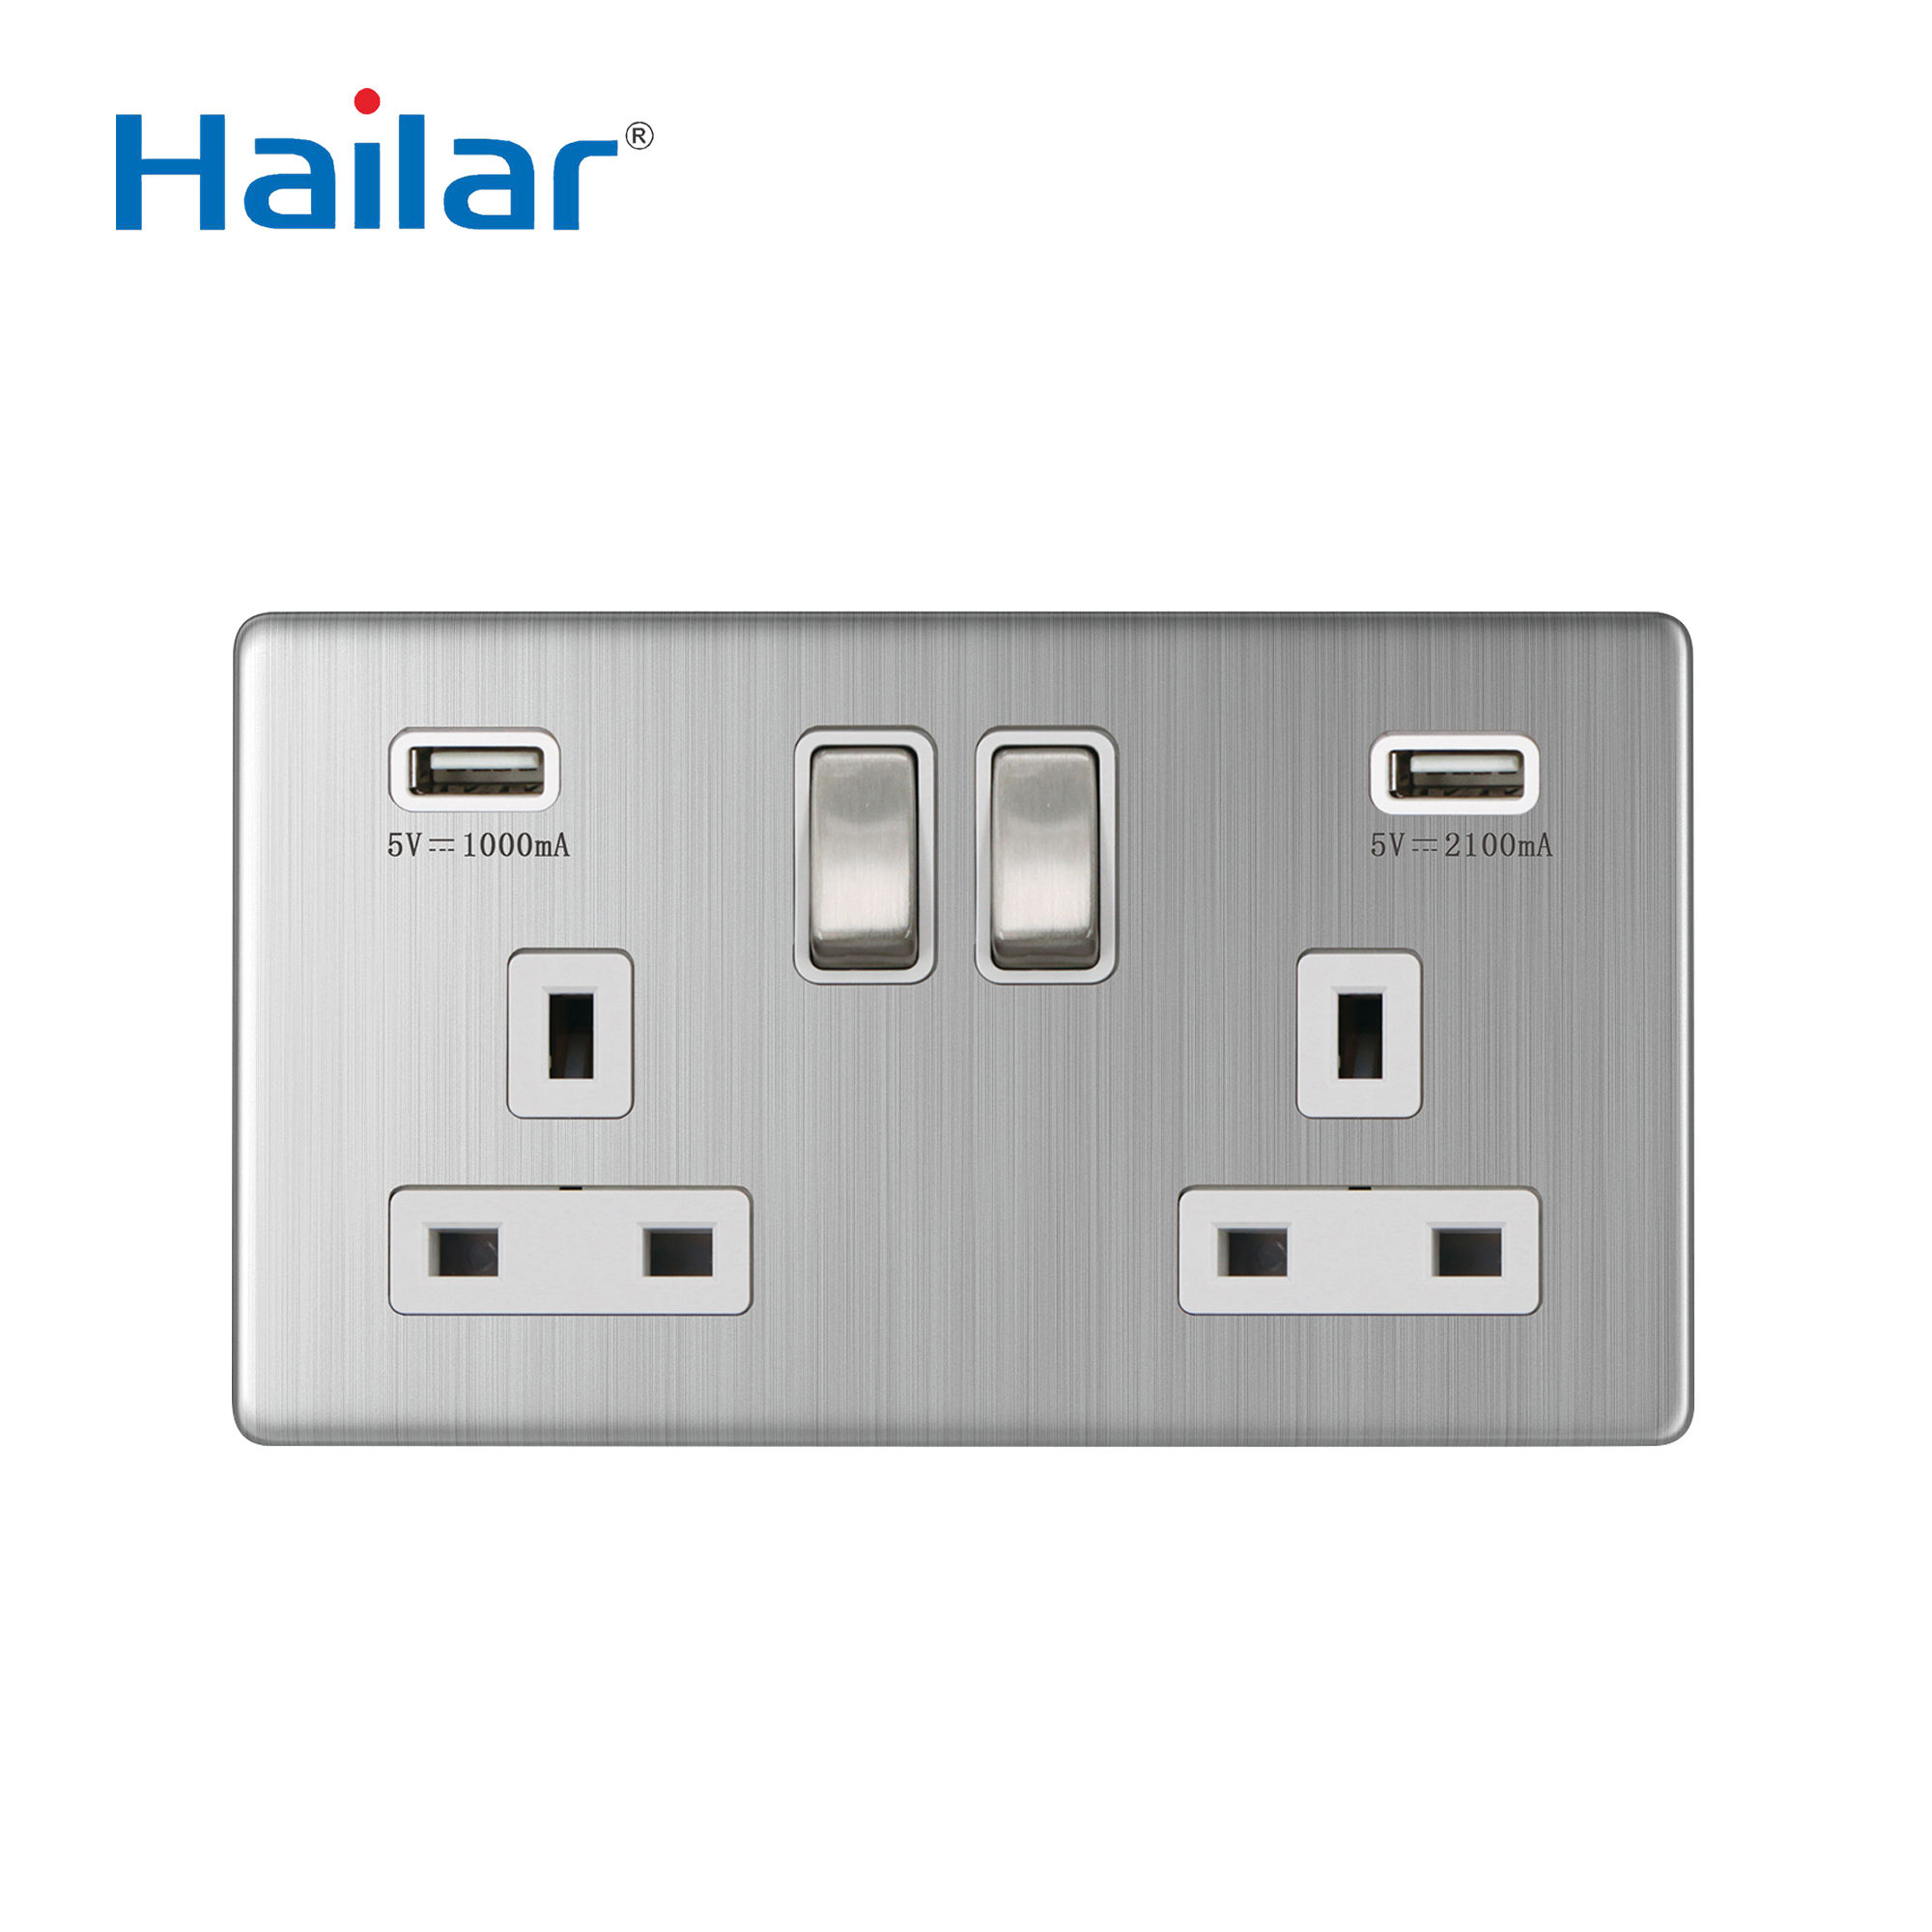 Hailar 2 gang wall switched socket with usb port pole electric UK brushed chrome